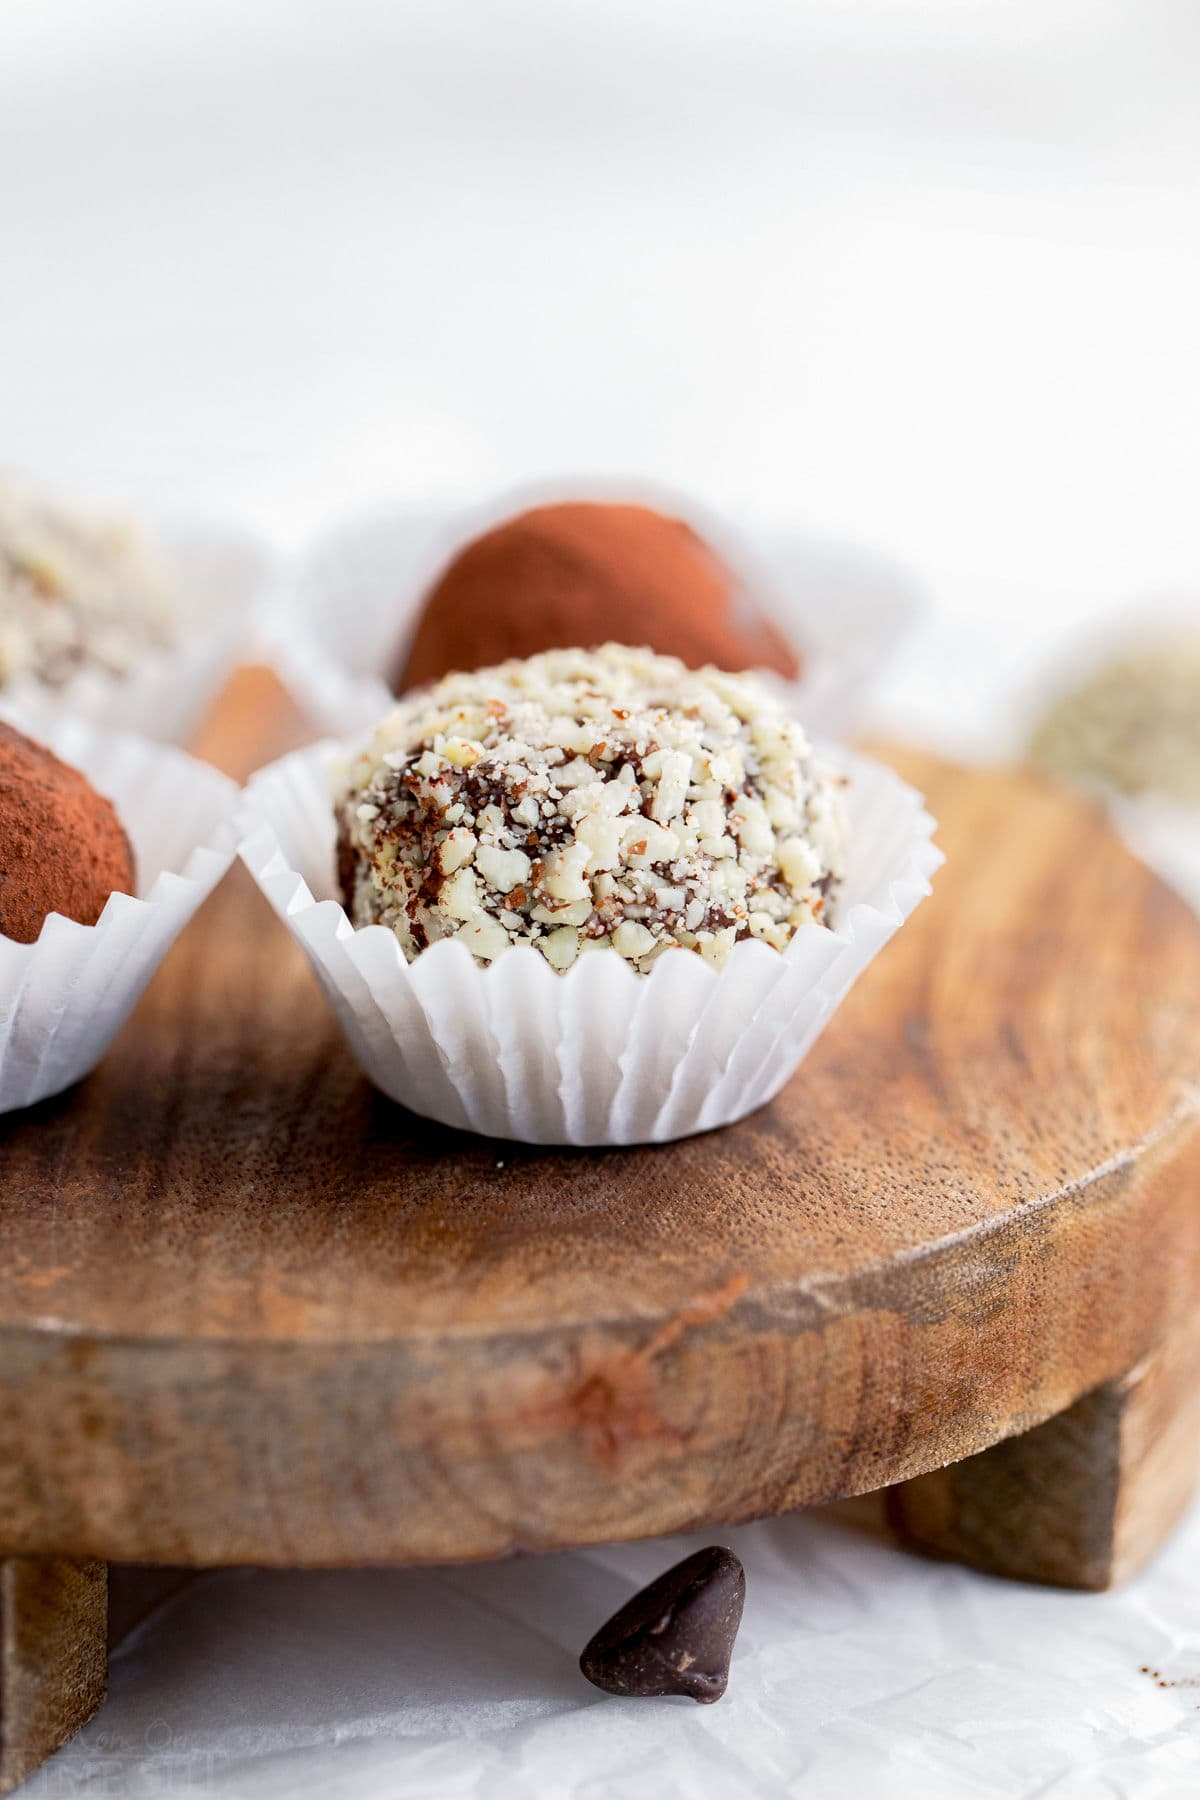 chocolate truffle coated in almonds in white paper cup on wood board